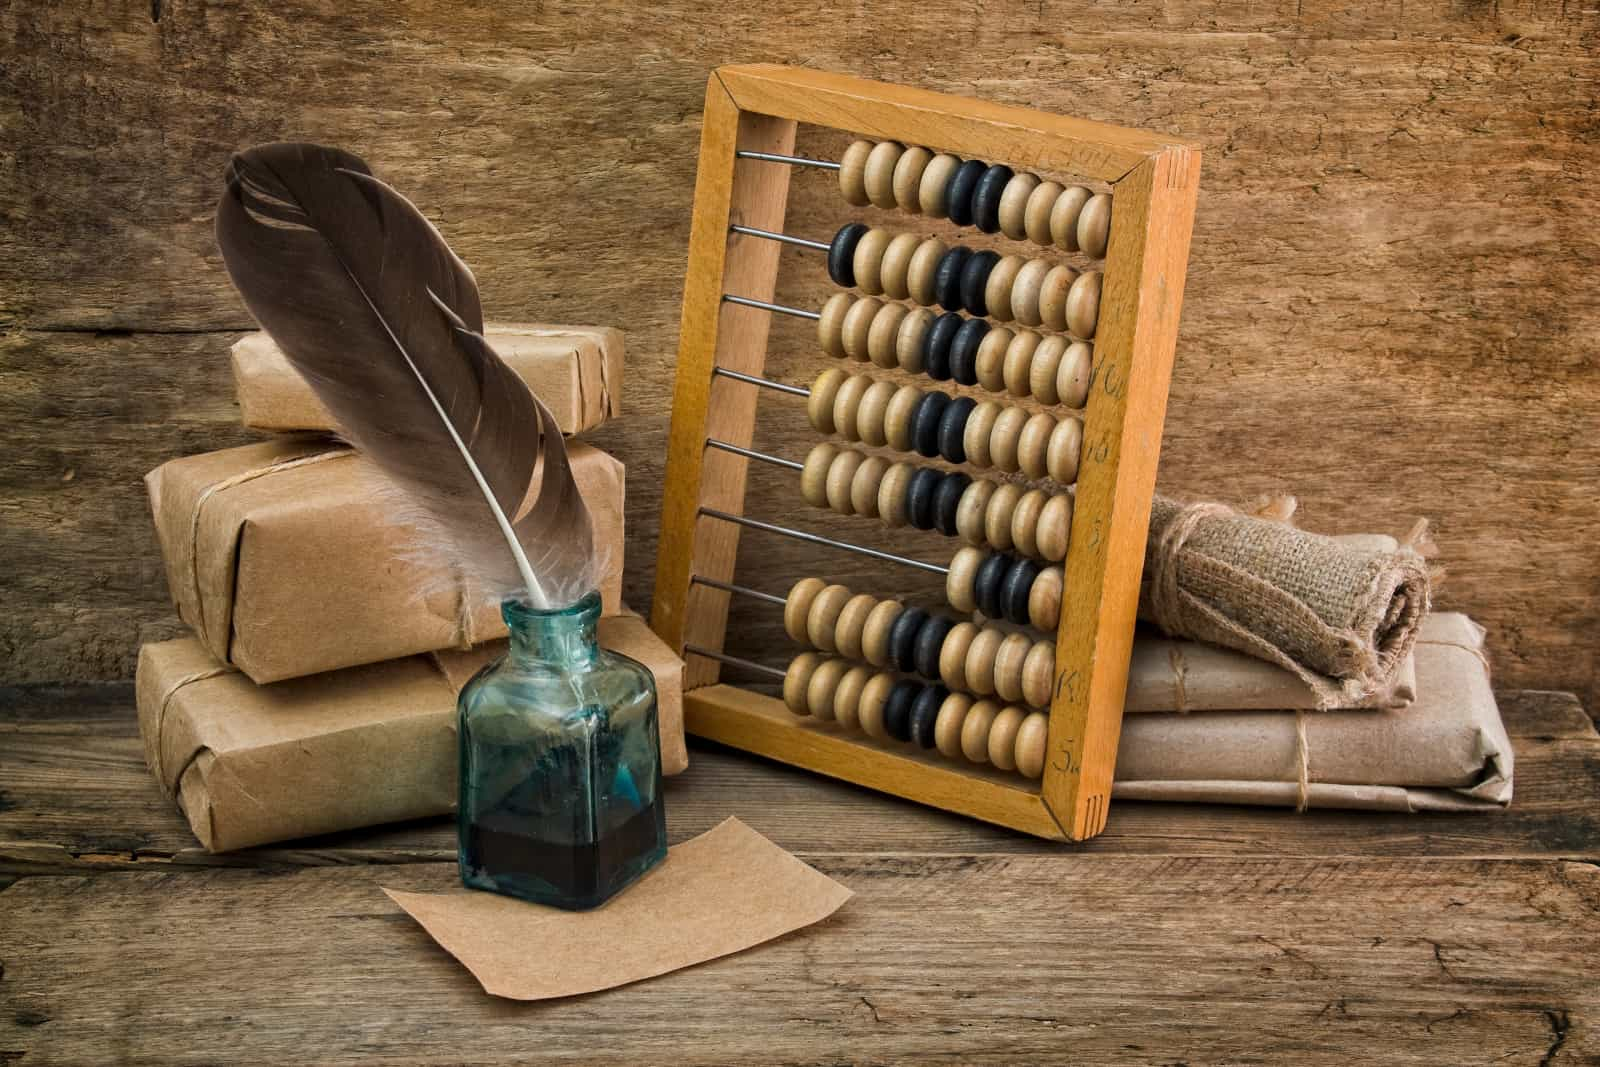 Old-Time Bookkeeping devices: abacus and ink pot + feather quill